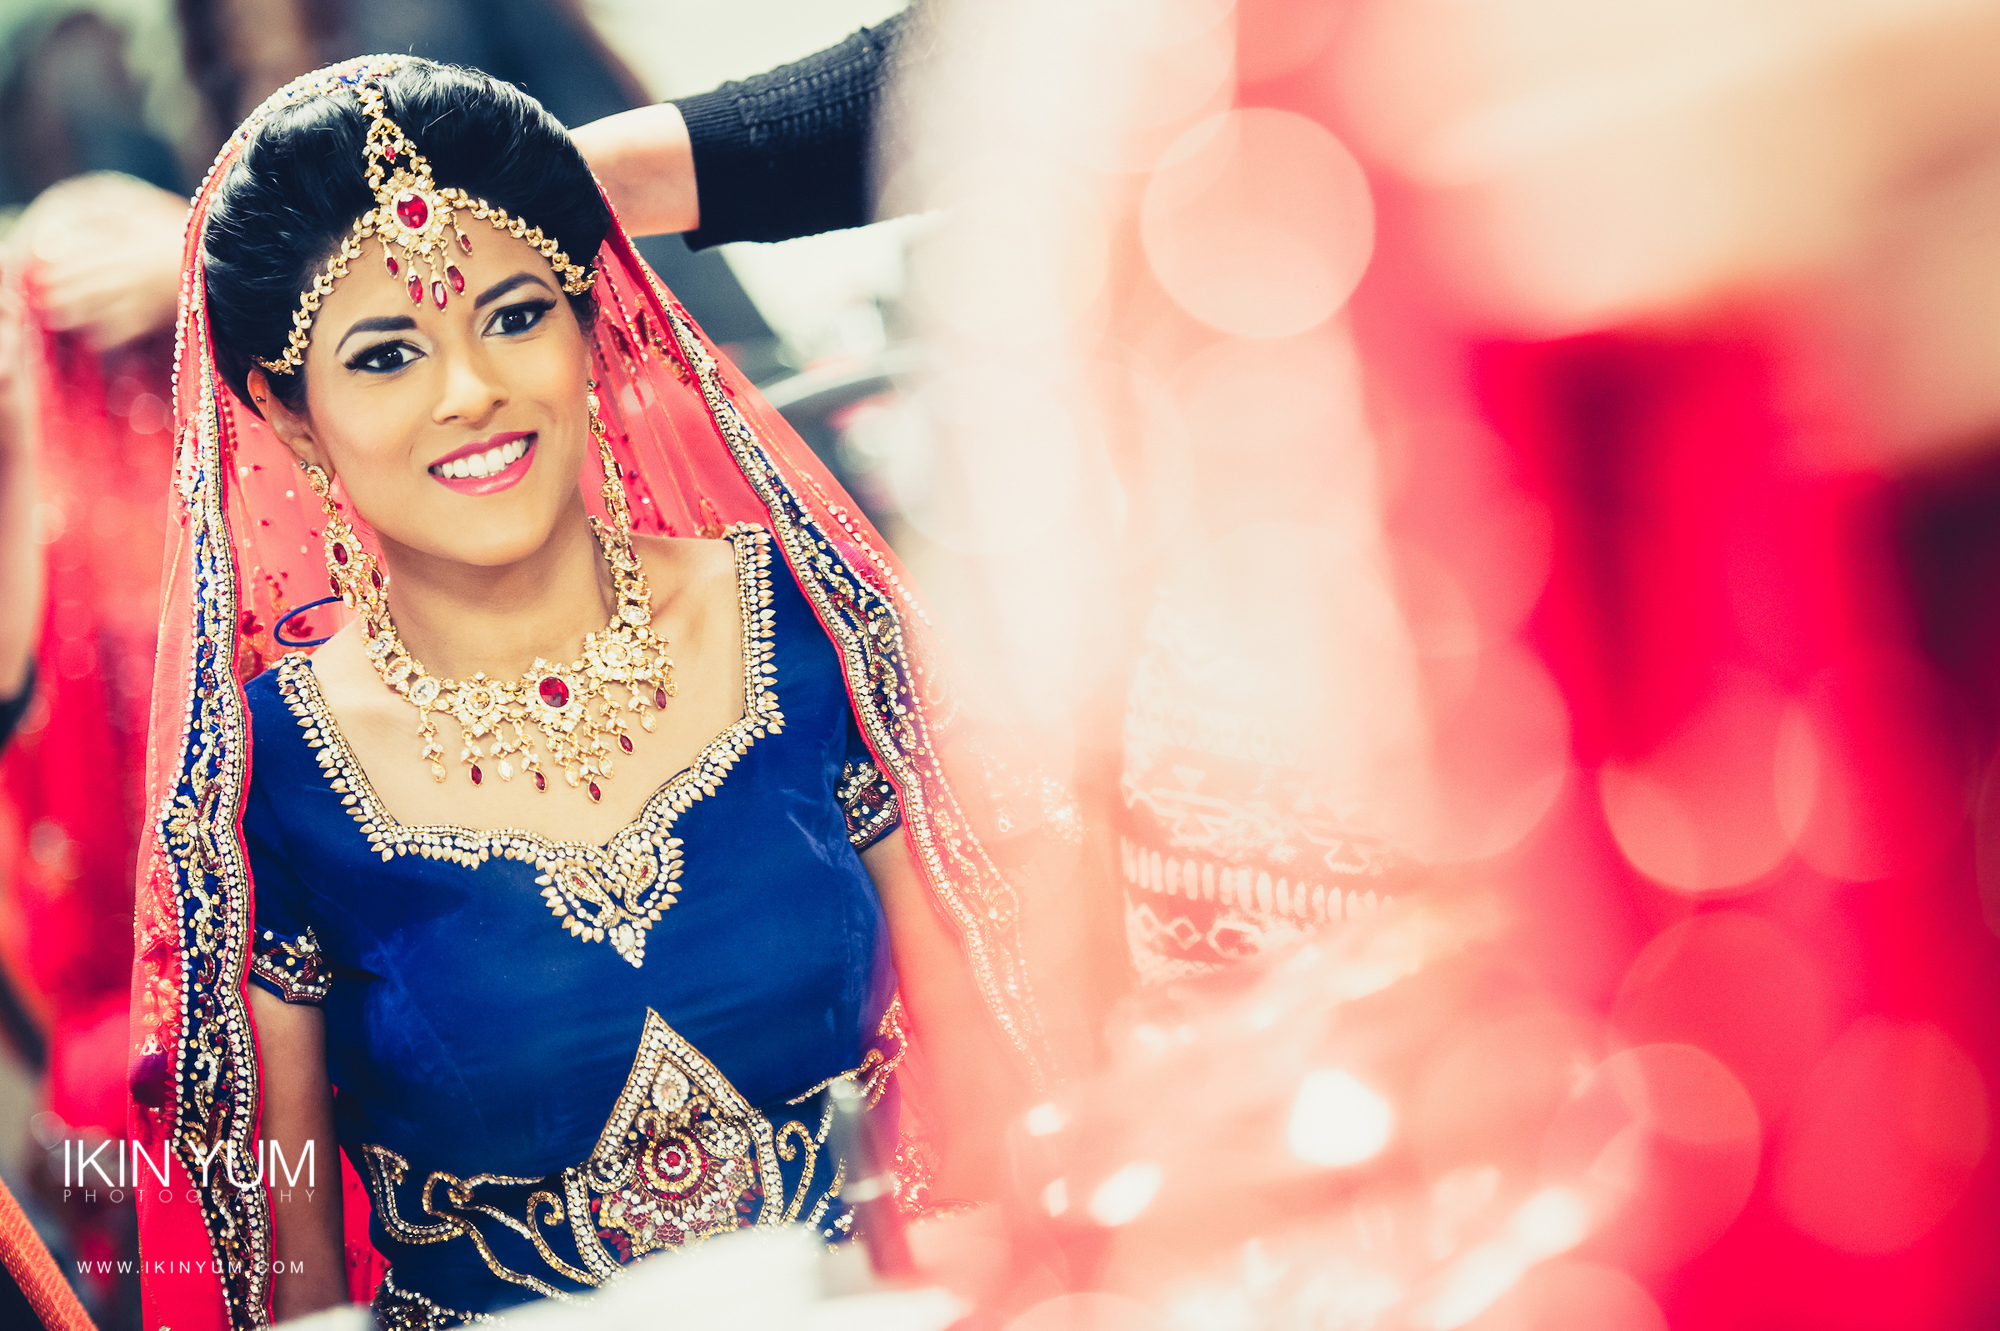 Oshwal Centre Wedding - Ikin Yum Photography-029.jpg